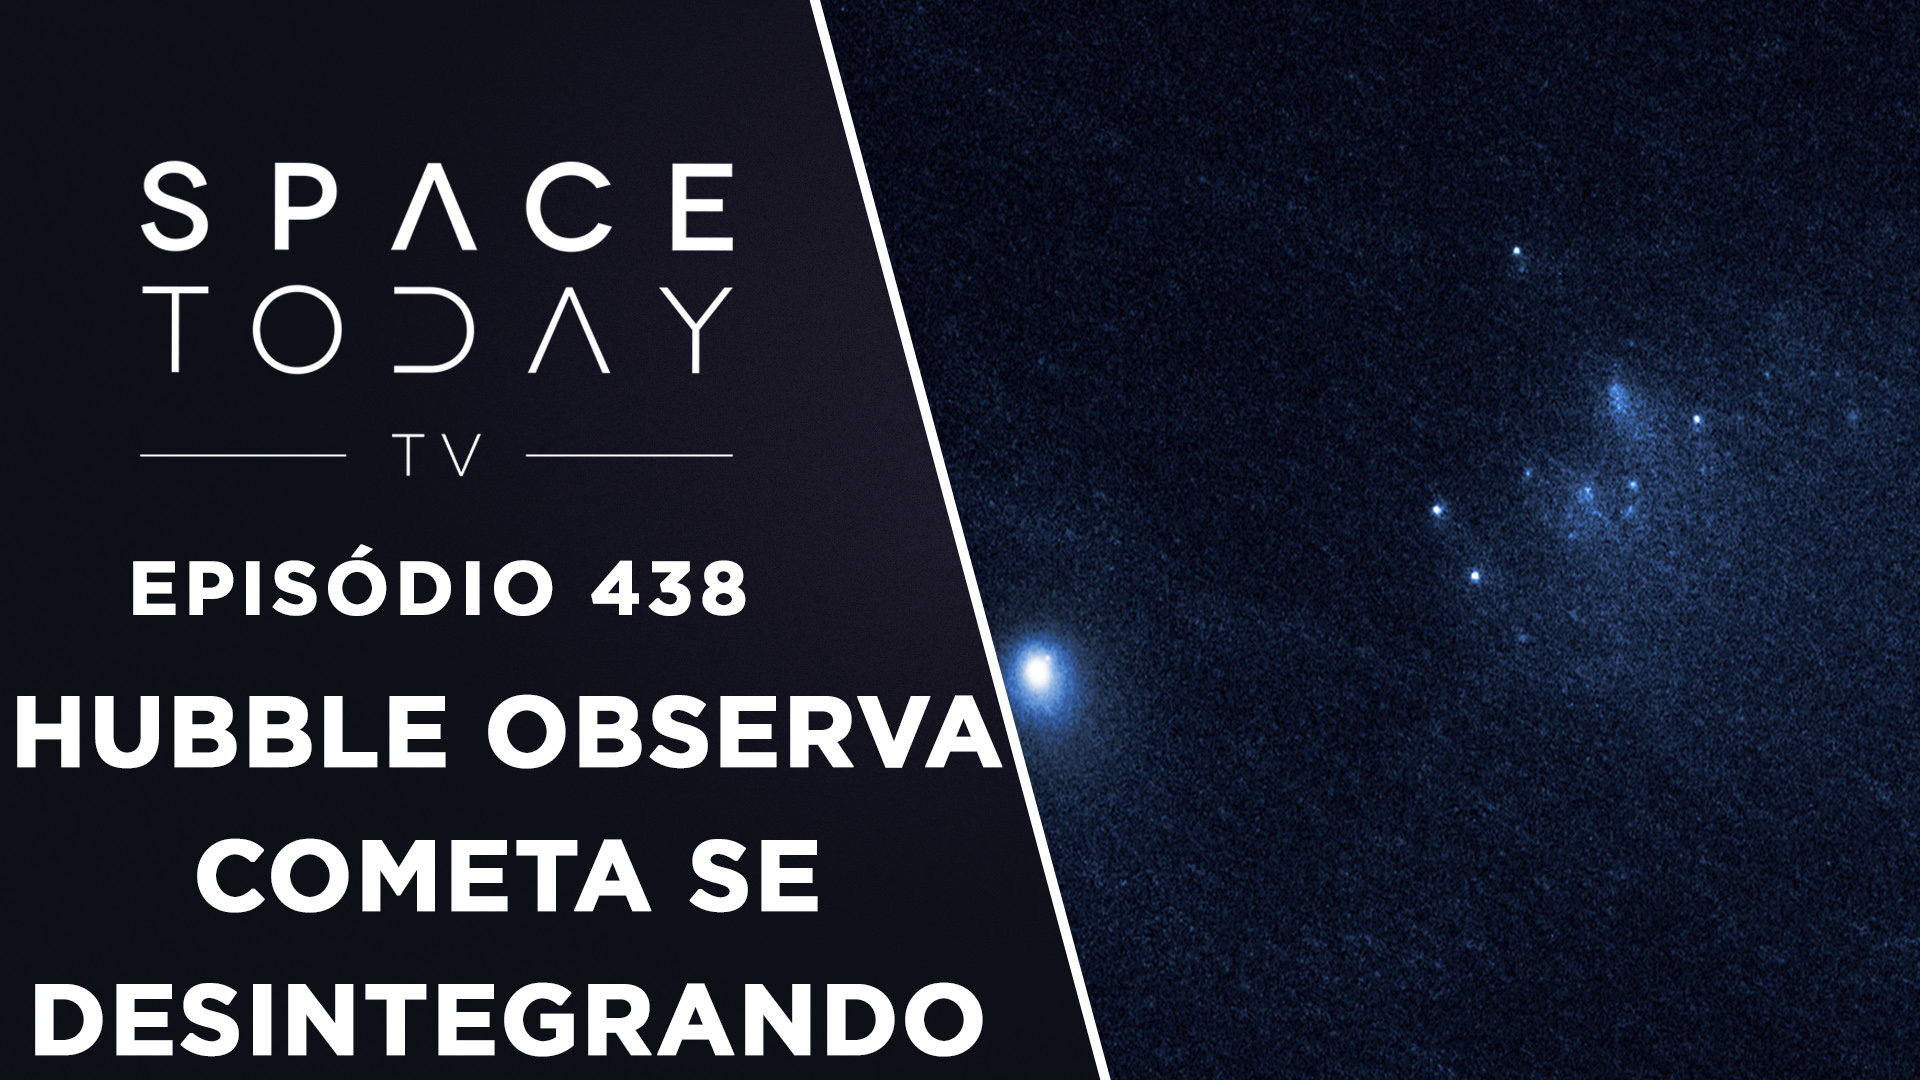 Hubble Observa Cometa Se Desintegrando – Space Today TV Ep.438